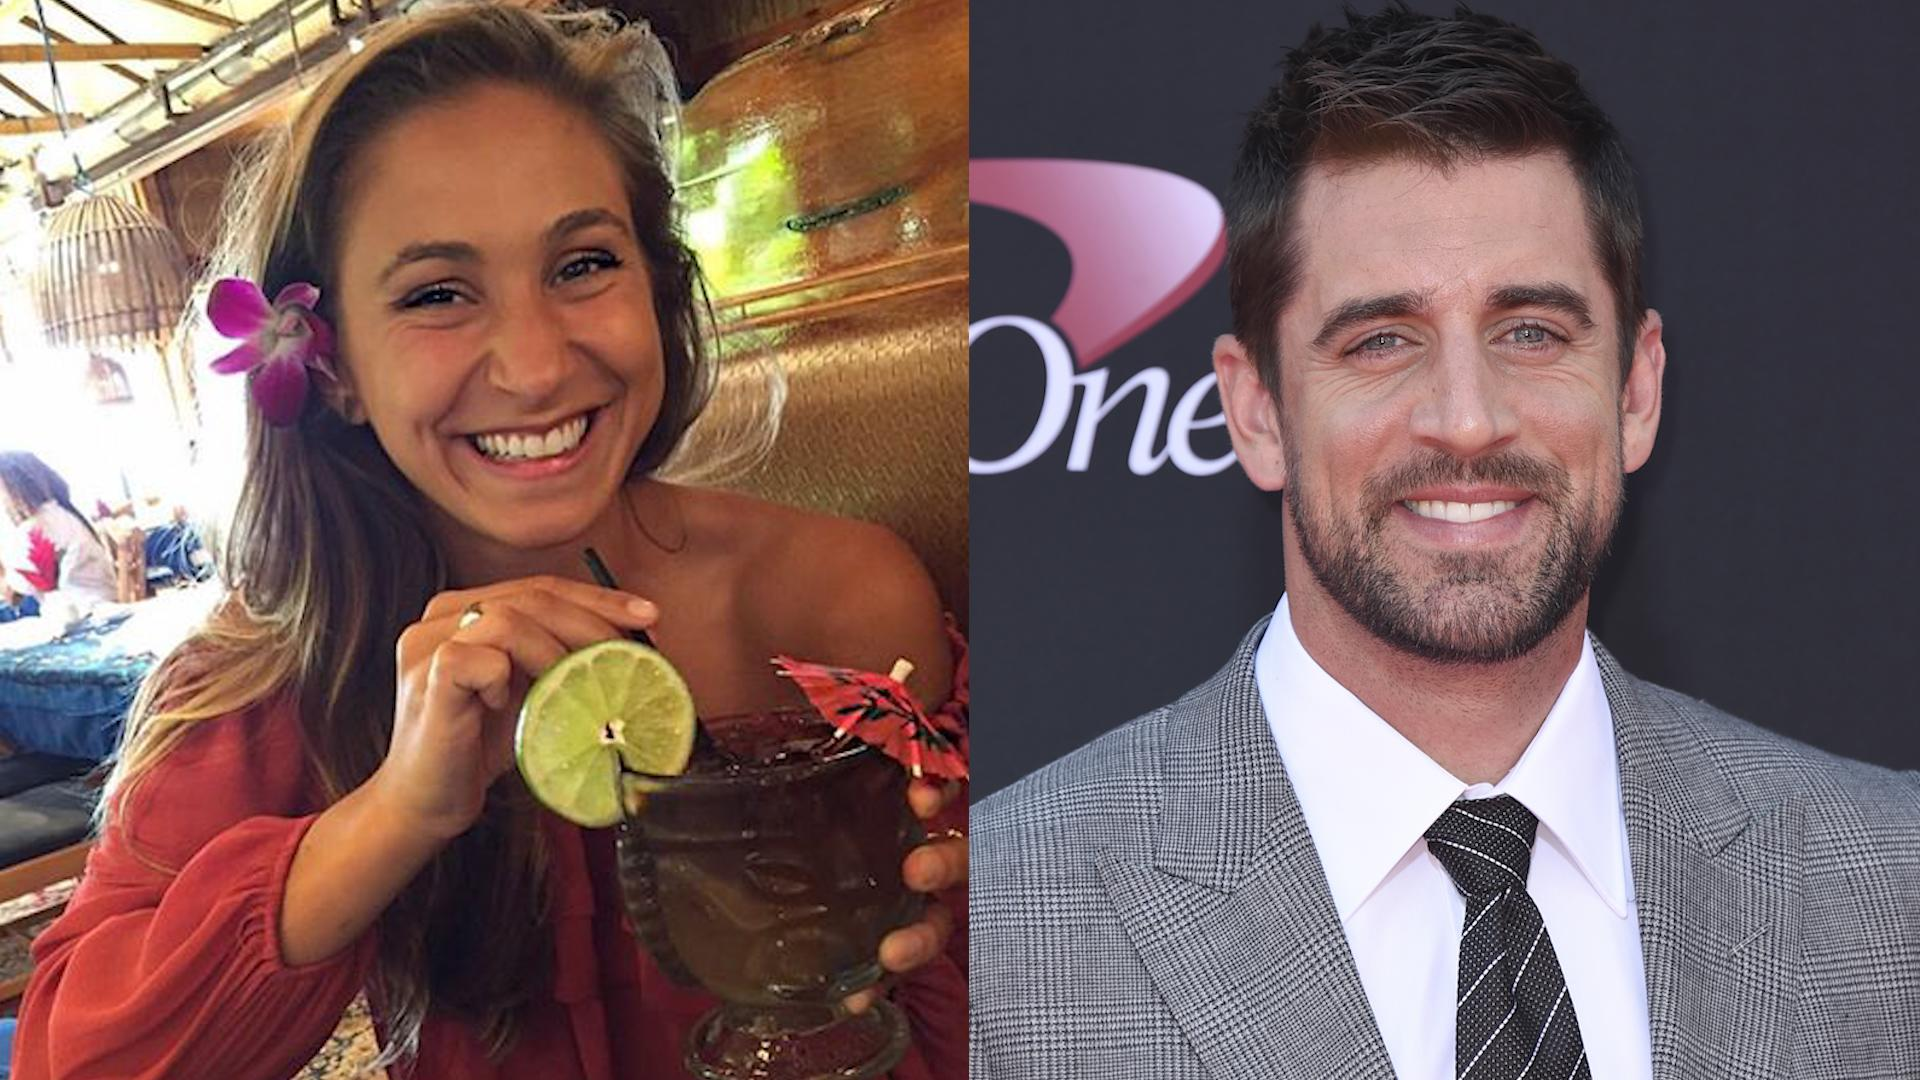 Aaron Rodgers is bouncing back from Olivia Munn breakup with a